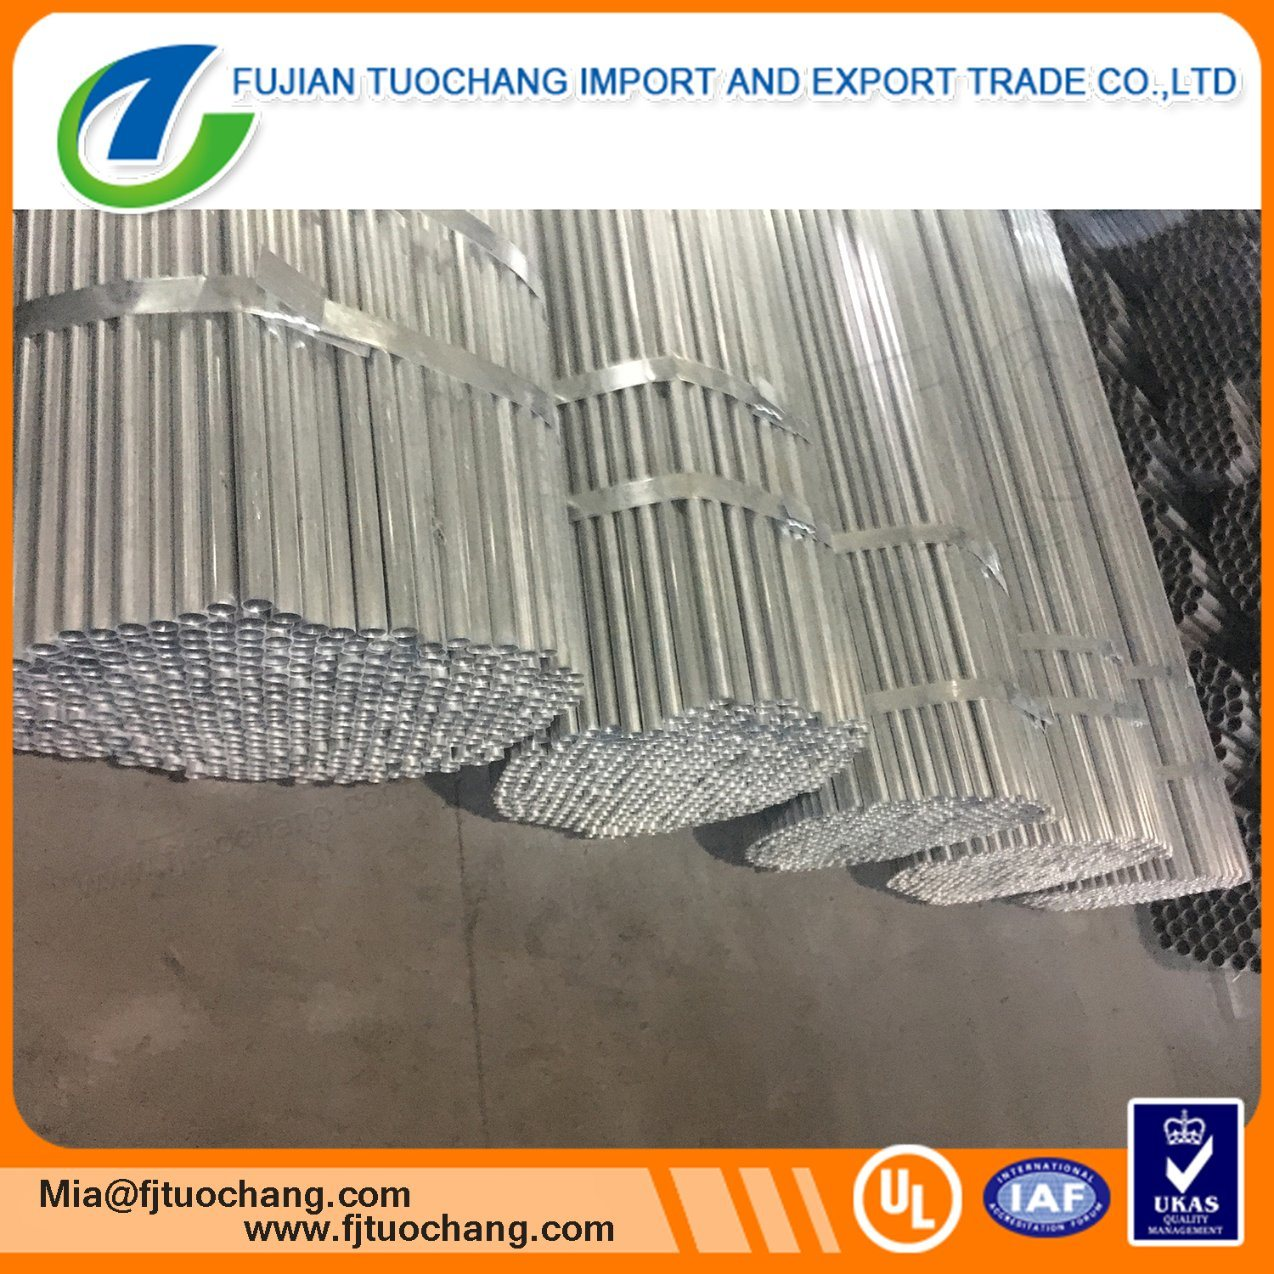 China Hot Dip Galvanized Electrical Cable Wiring Conduit Photos Electricwireconduitjpg